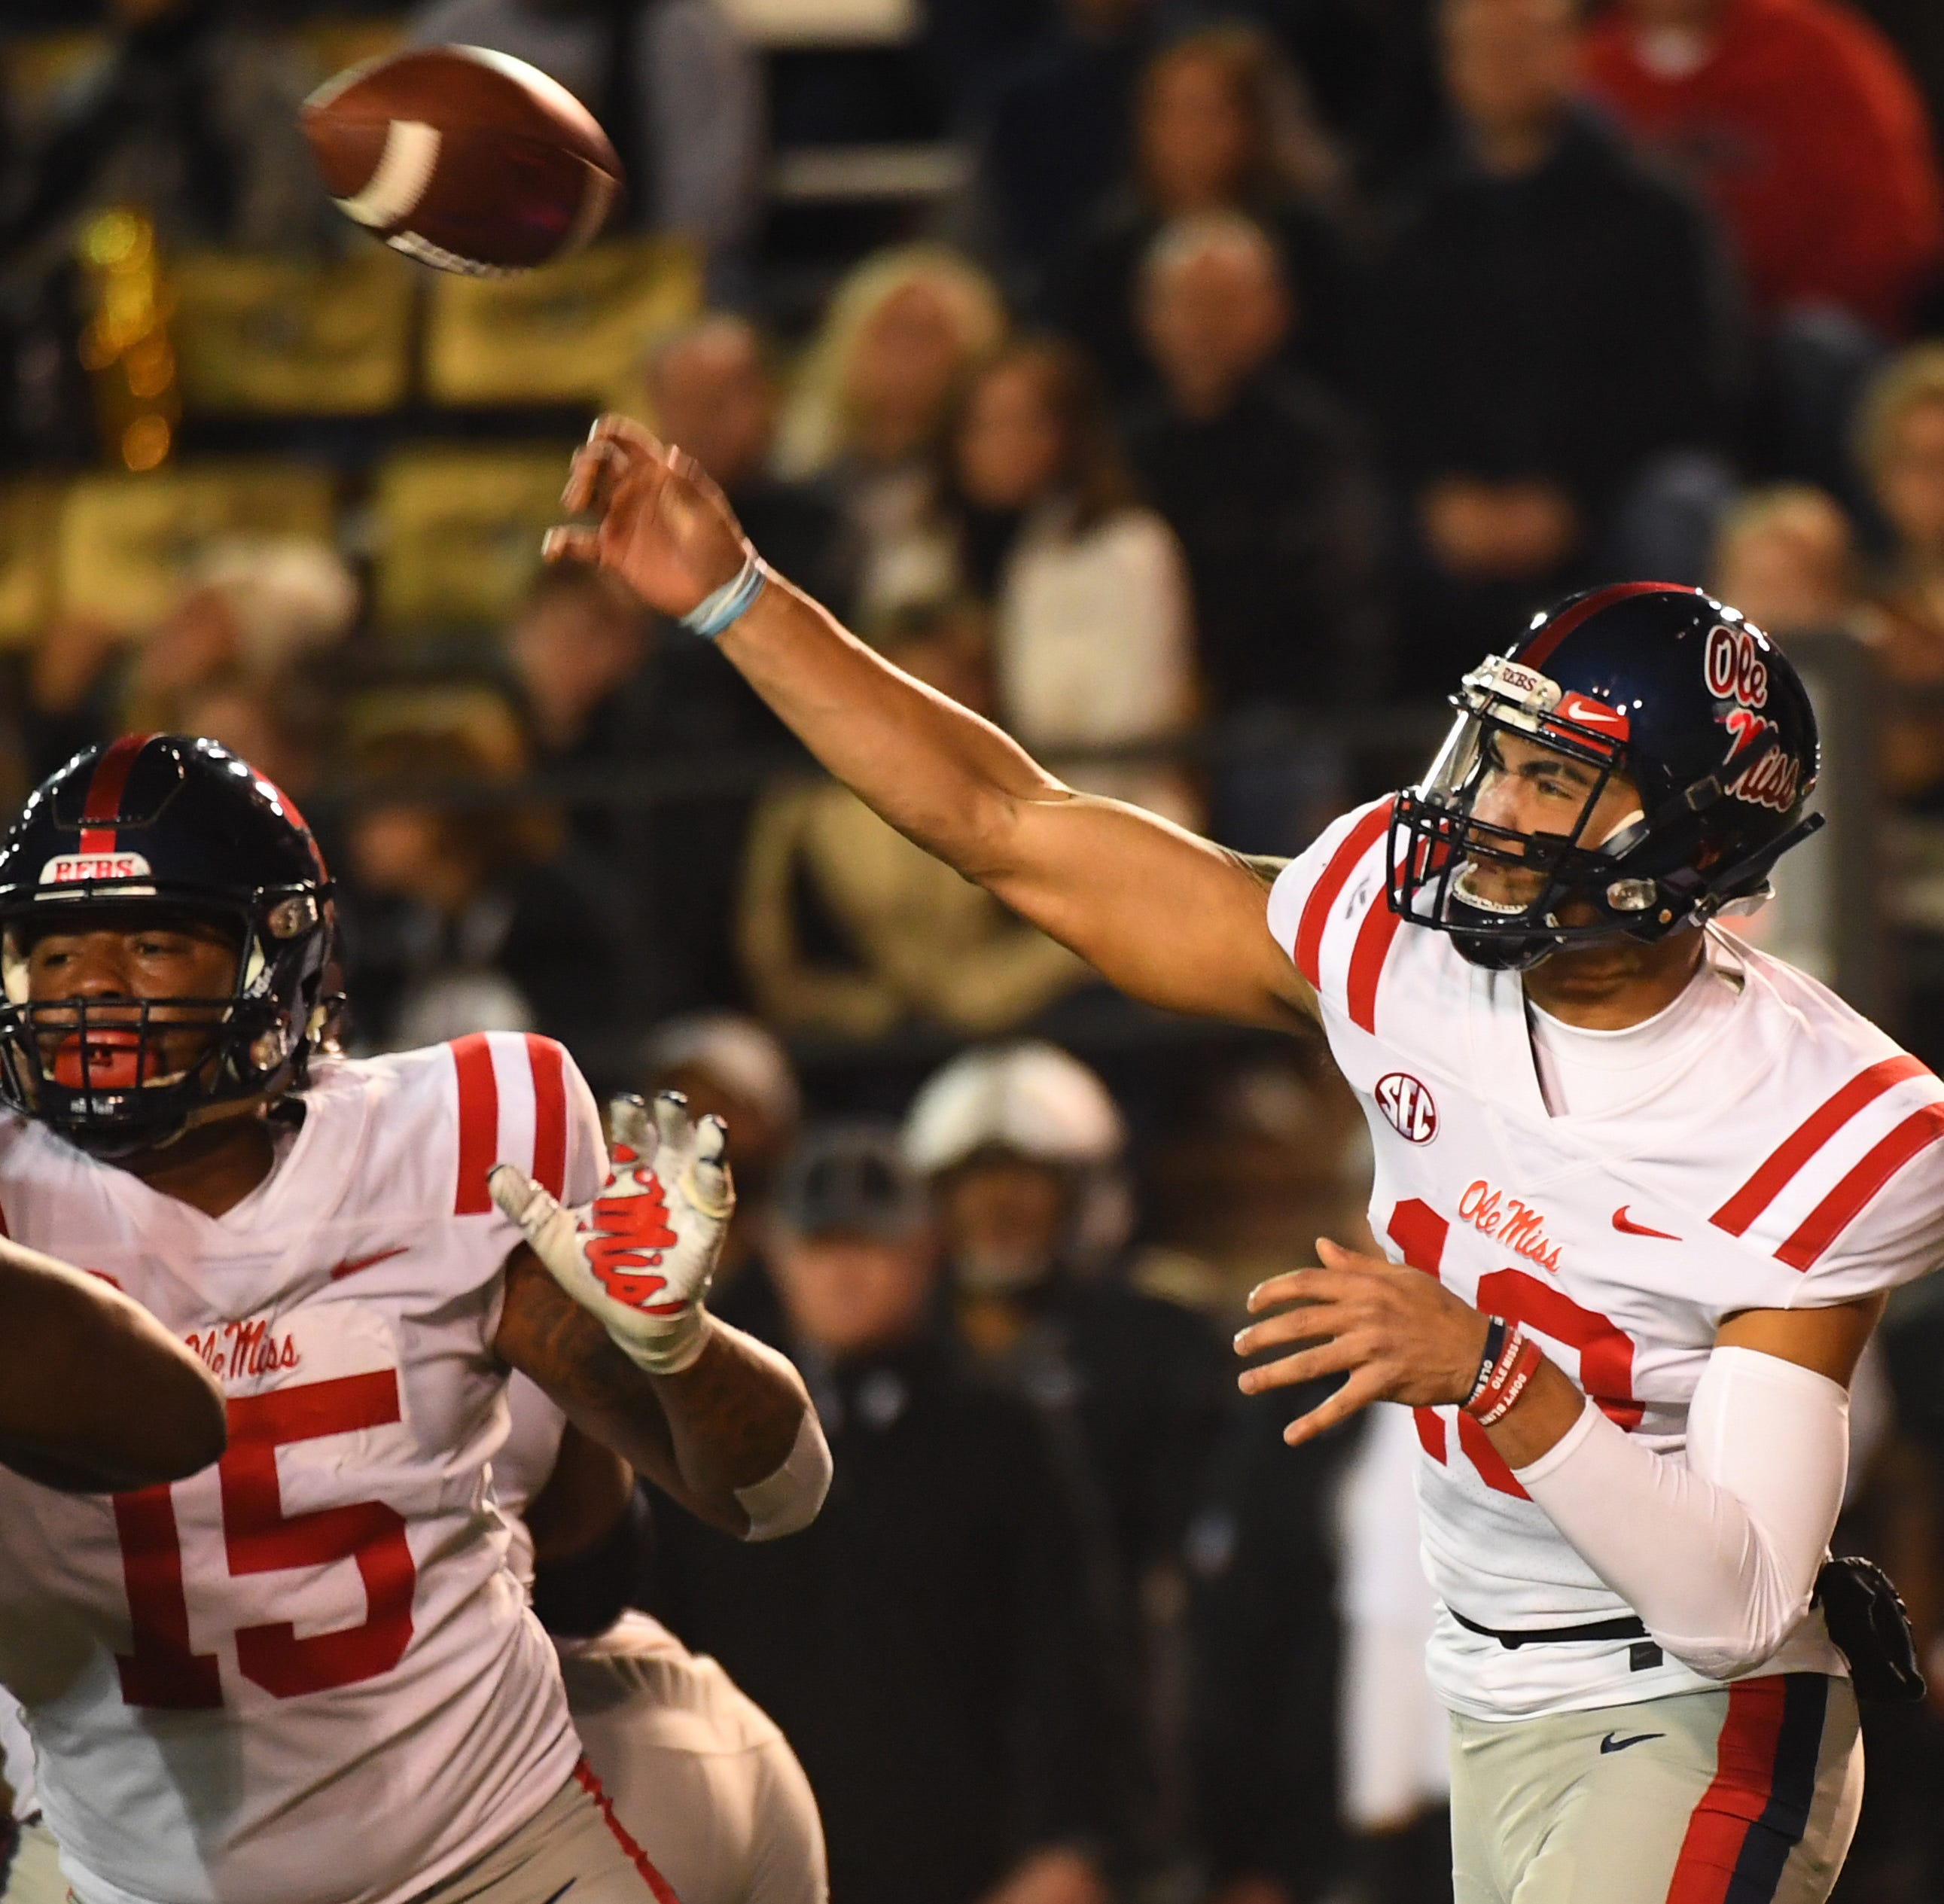 Ole Miss loses overtime thriller 36-29 at Vanderbilt